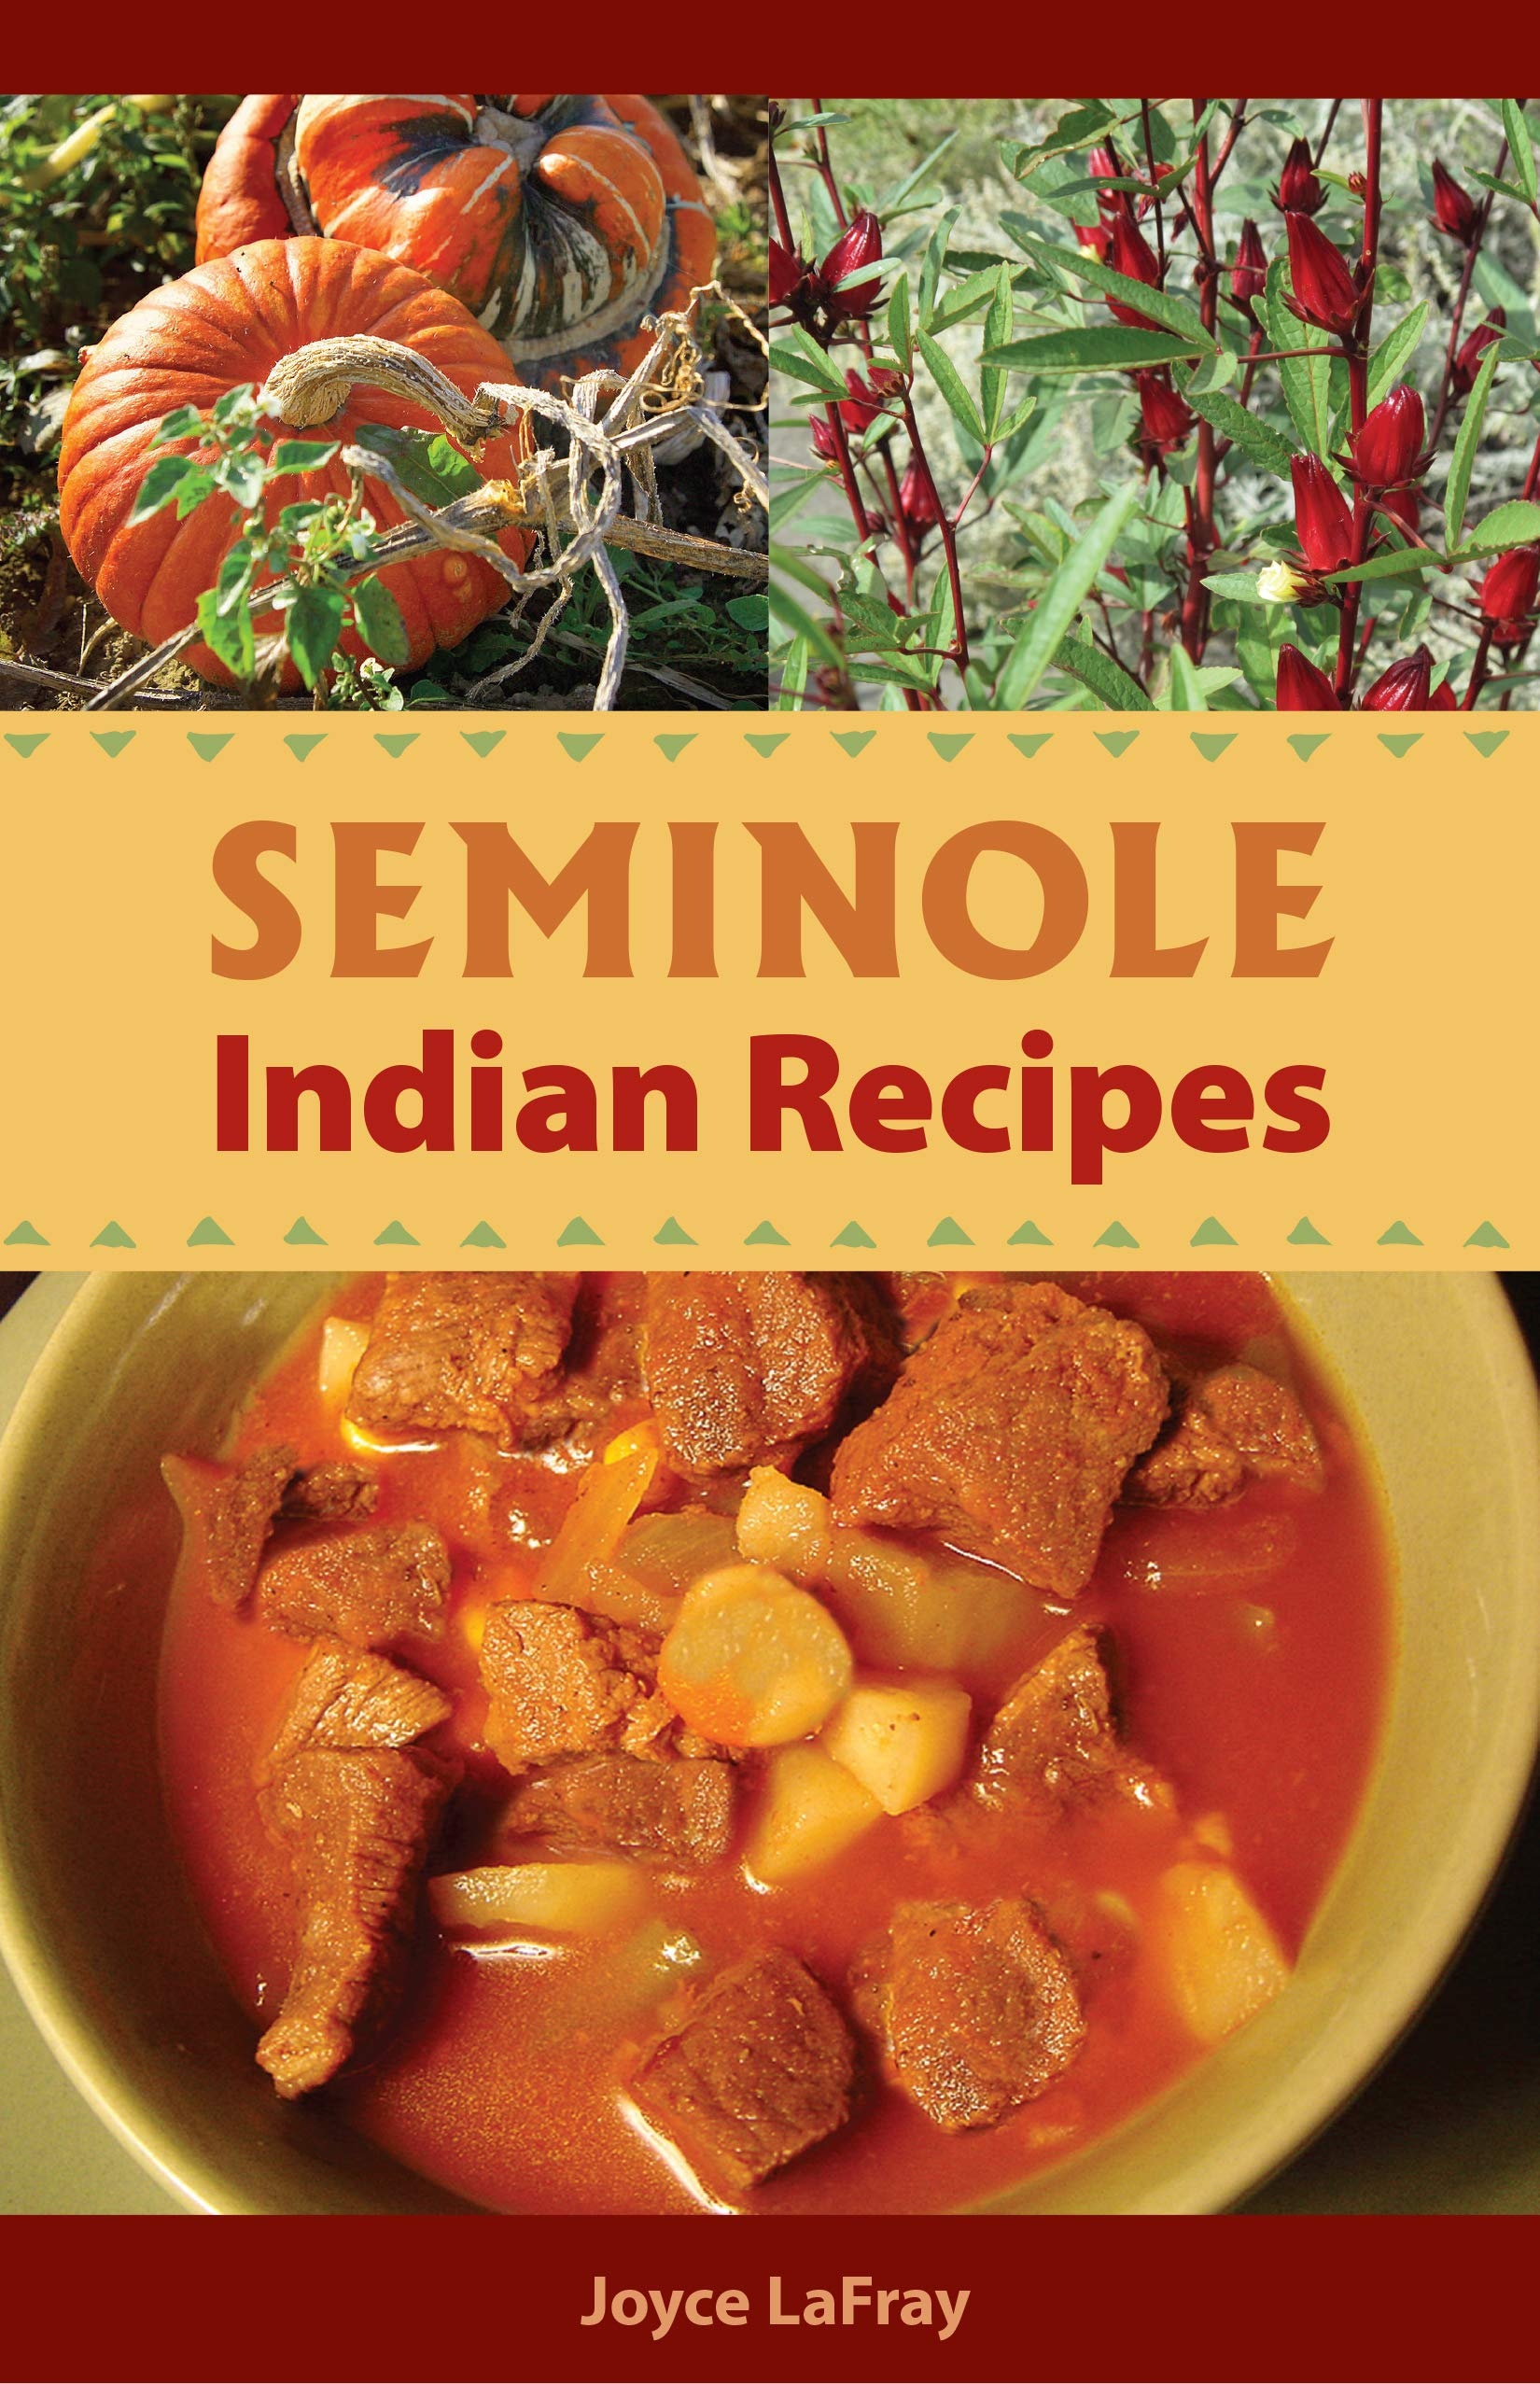 Seminole Indian Recipes